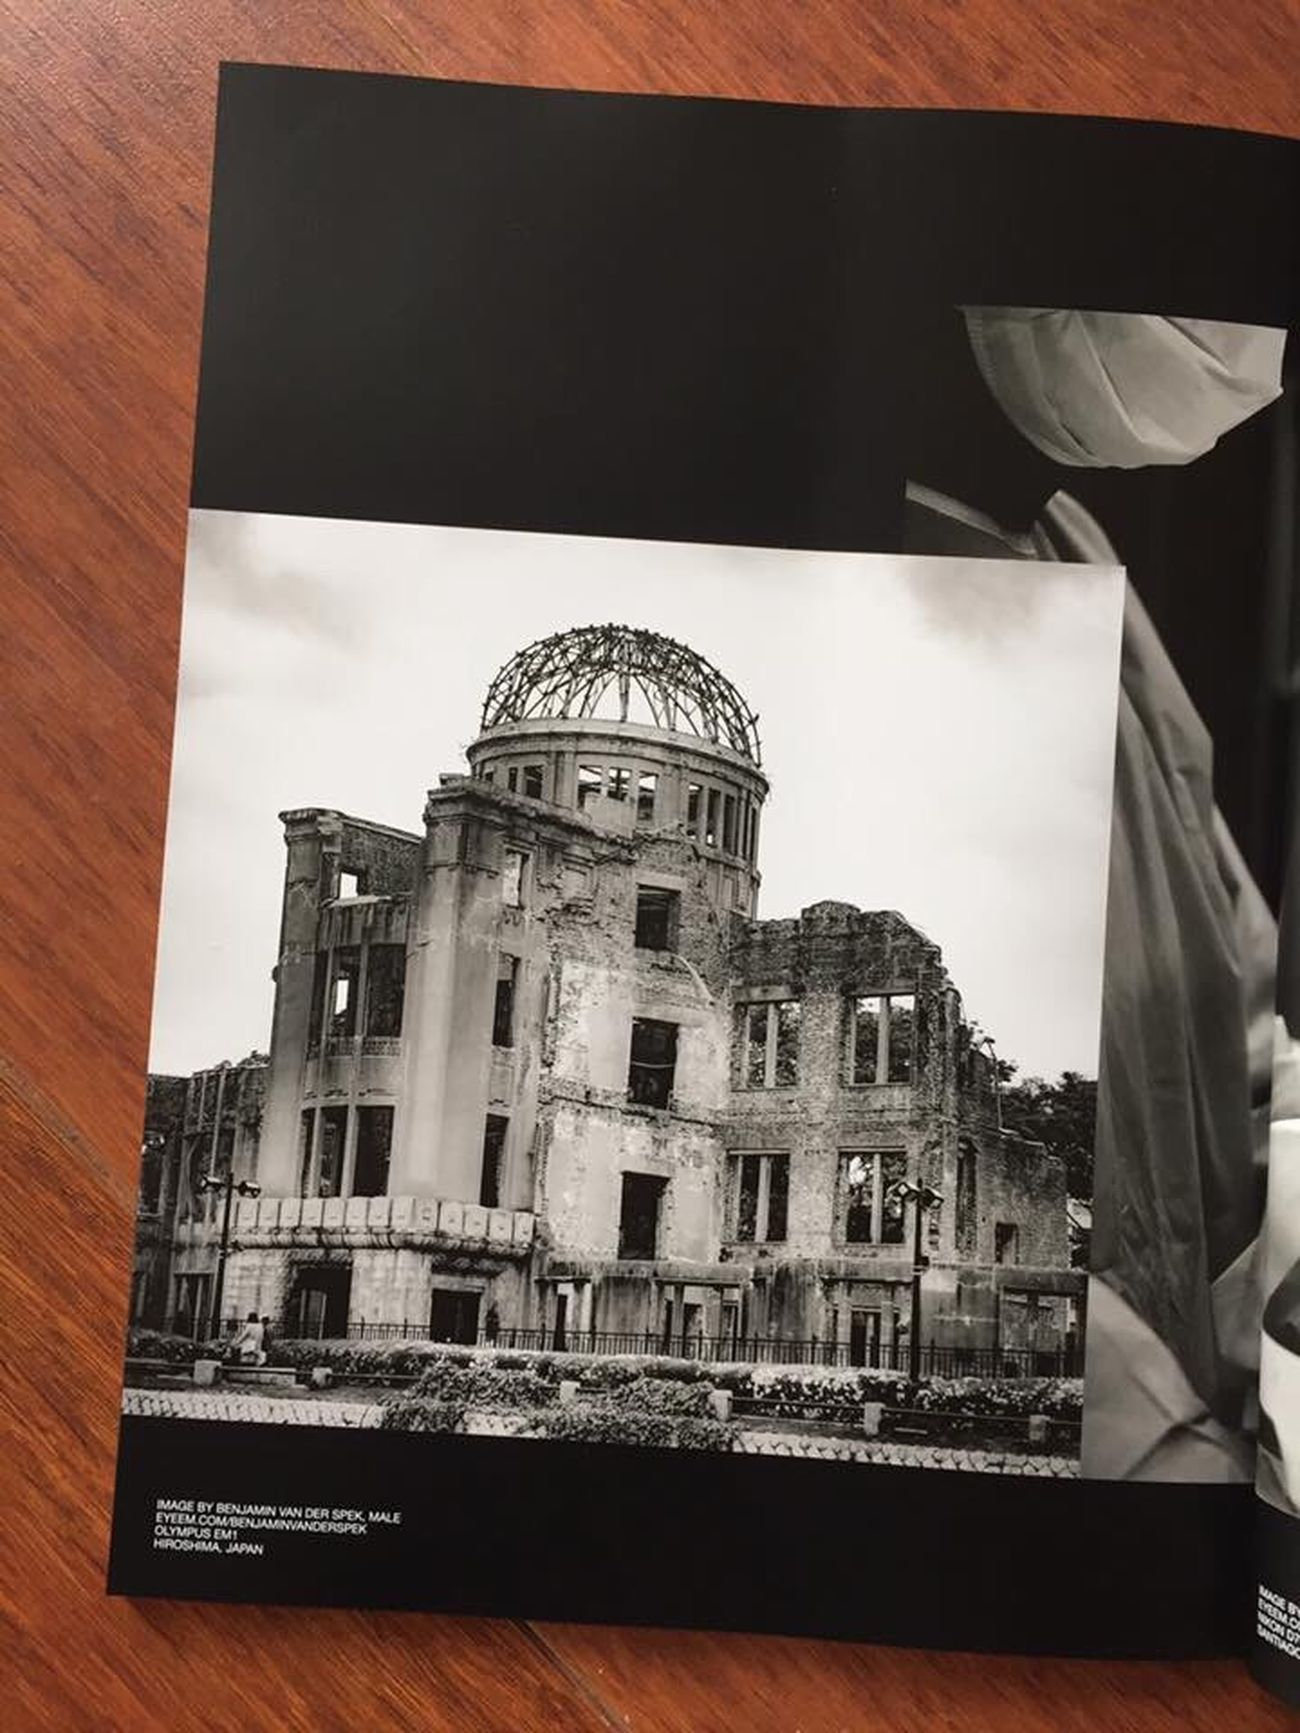 I am very proud to see my work published again in EyeEm's glossy photo-magazine. This time a photo from Hiroshima's fateful peace memorial, published in Volume 5. I have strong memories of our visit to Hiroshima. It is such a beautiful place now, it's hard to image it was once turned into hell on earth by a nuclear bomb. The memorial is part of the serene Hiroshima Peace Memorial Park and the nearby museum brought tears to my eyes. Thanks @team EyeEmMagazine Volume 5 Eyeem Magazine Vol V Diversity Travel Black And White Hiroshima Japan Memorial Park